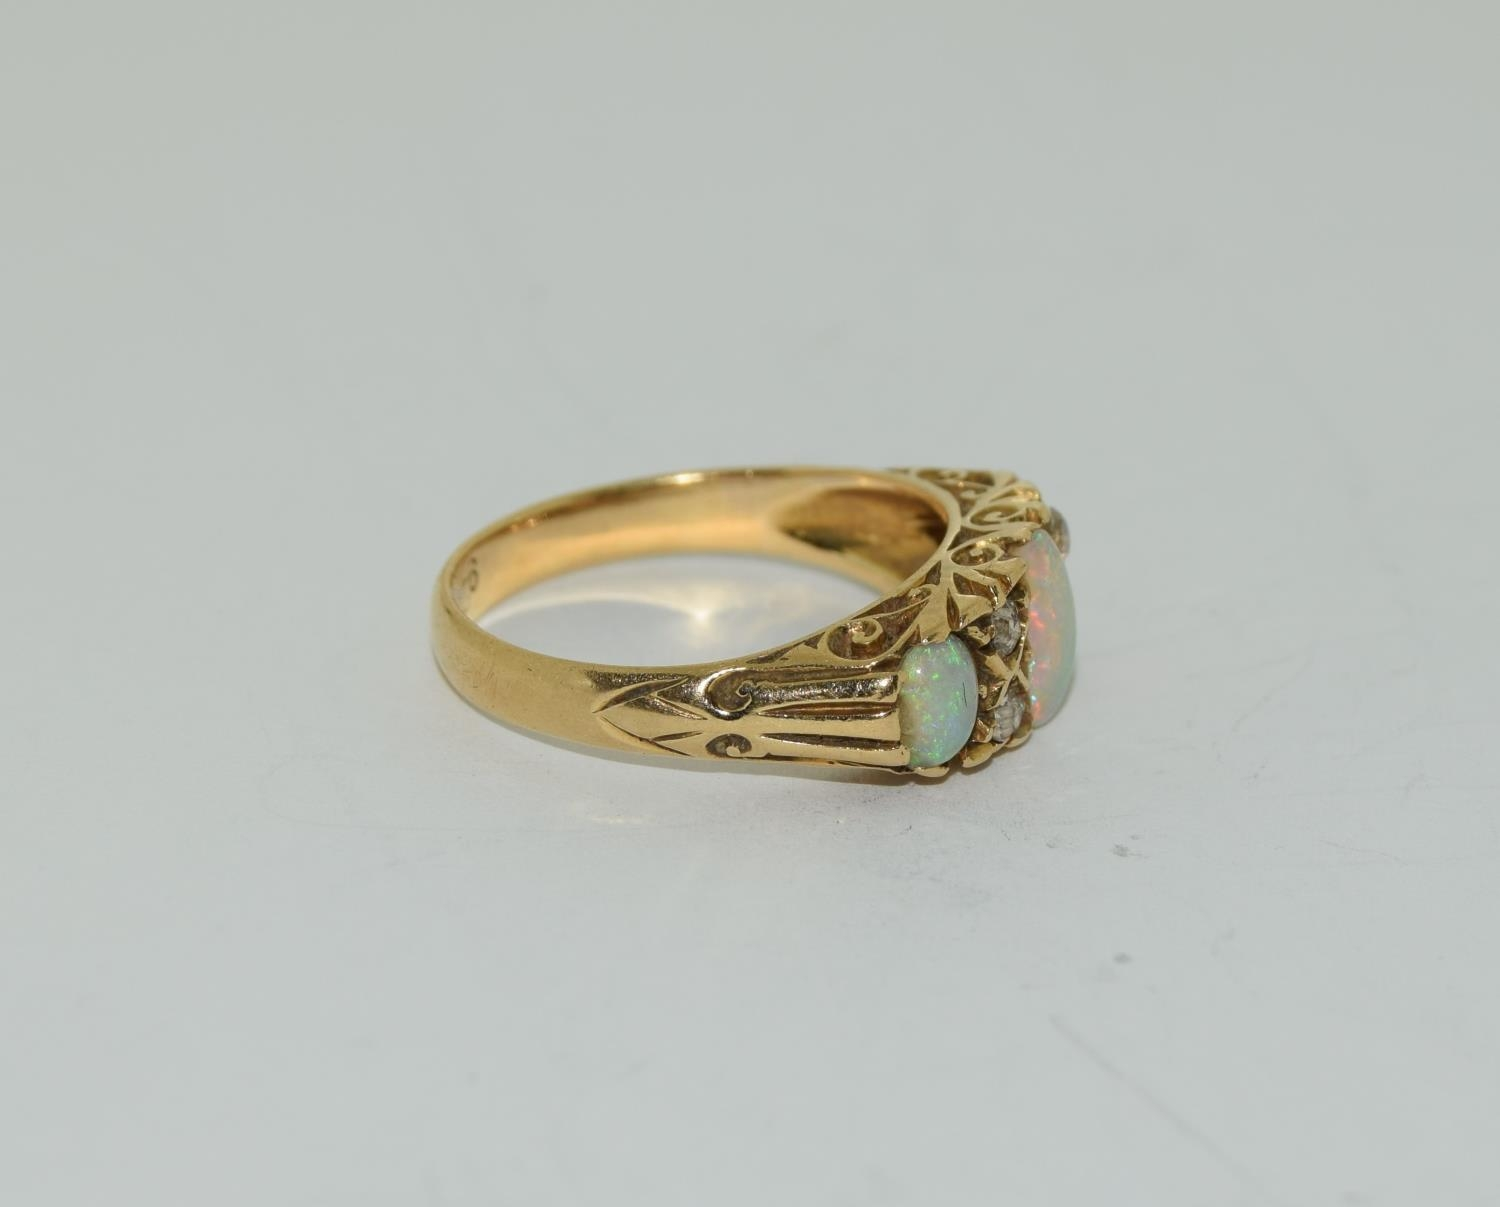 18ct gold ladies 3 stone opal and diamond ring size M - Image 2 of 5